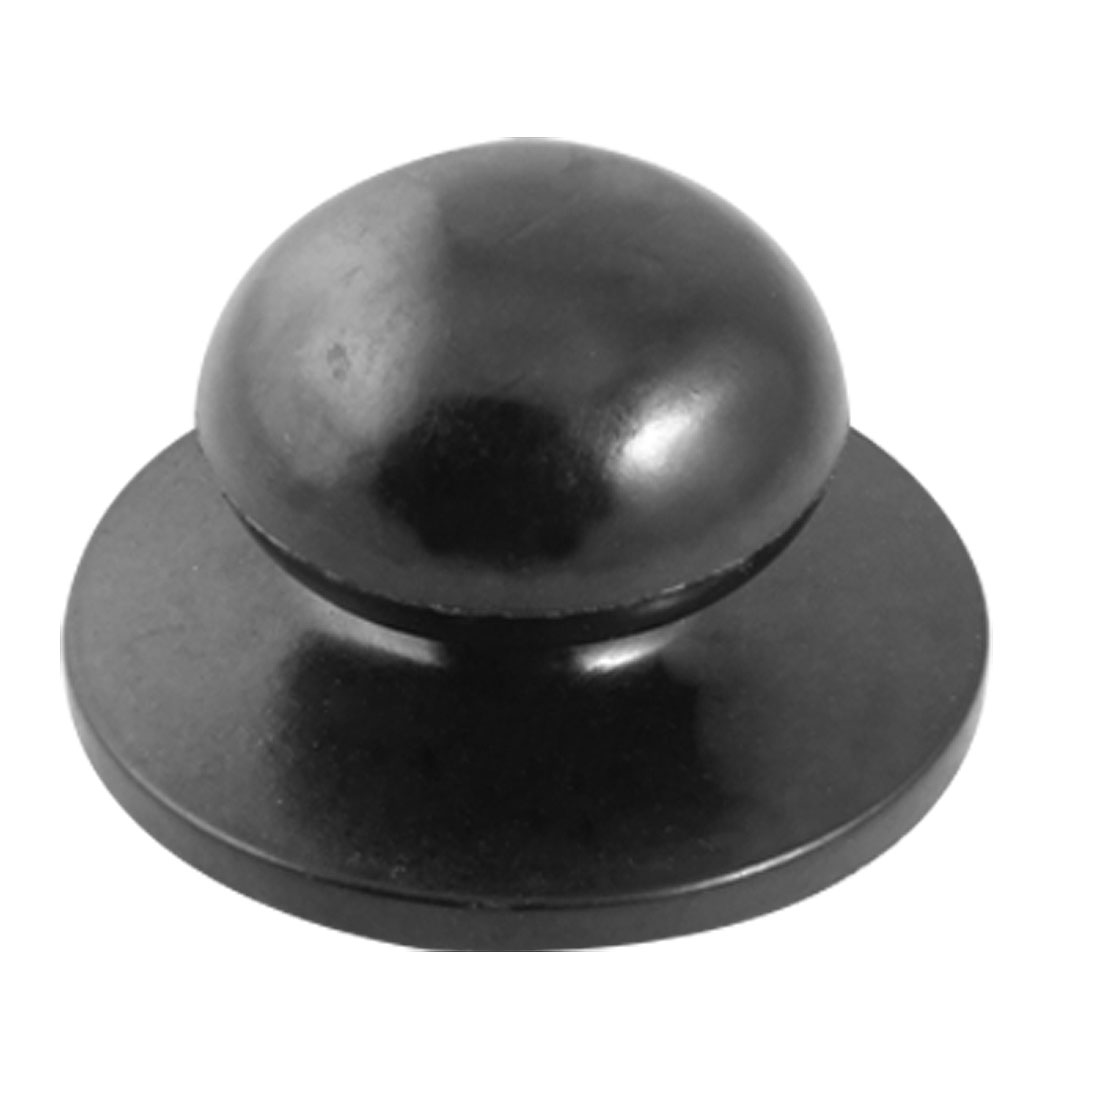 Family Black Cooking Utensils Replacement Parts Pot Lid Knob